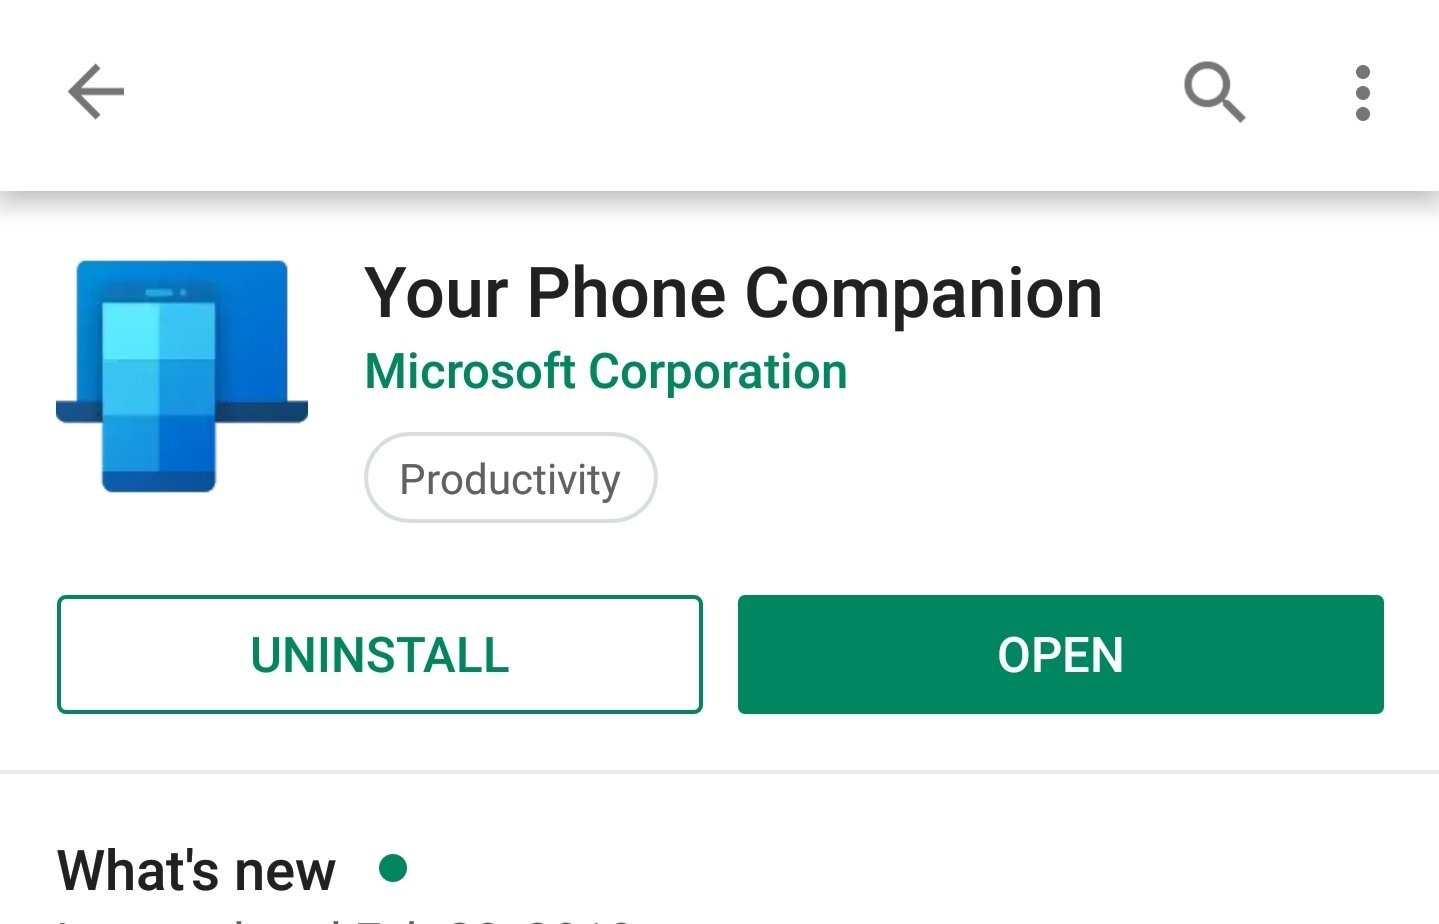 Microsoft's Your Phone Companion gets a new icon on Android